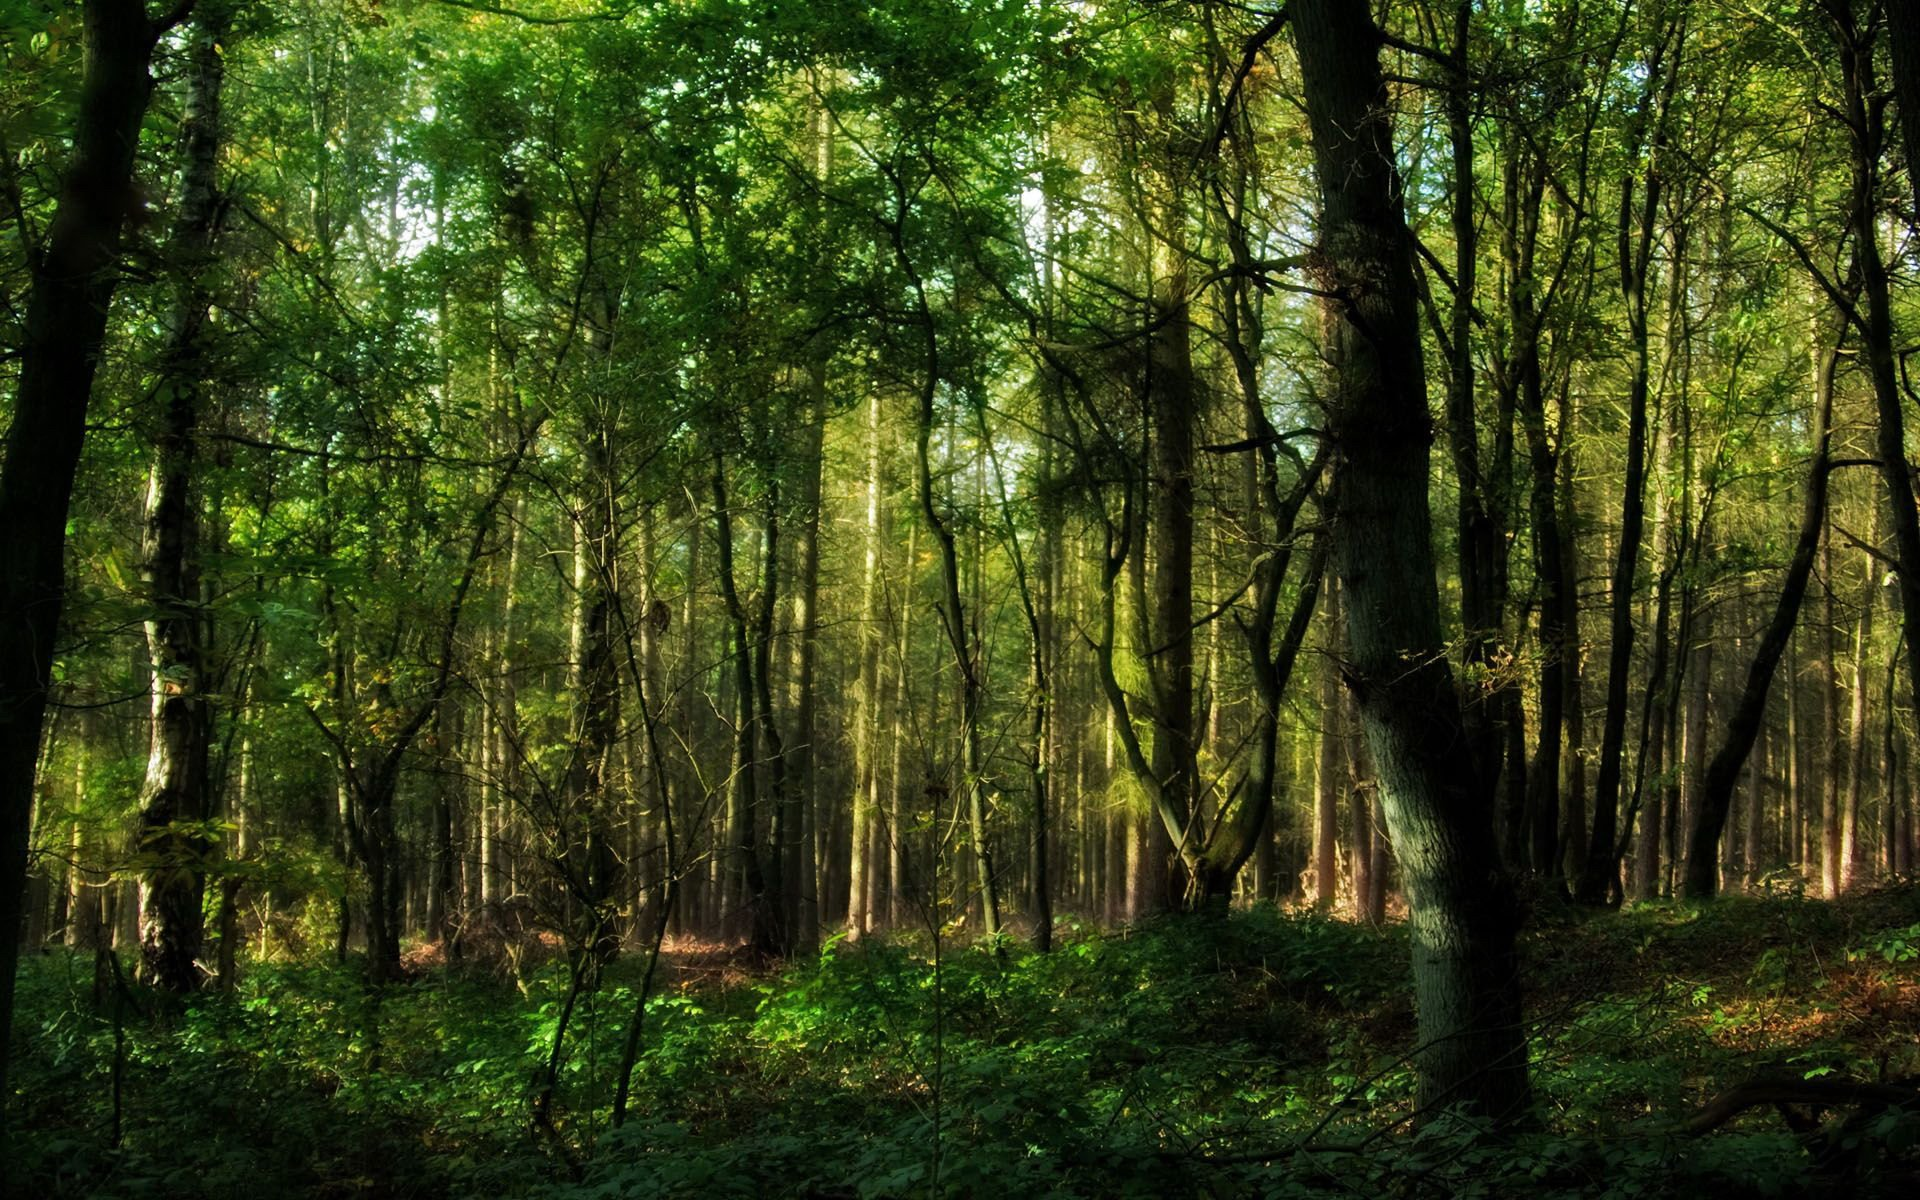 Green Forests Jungle Background Daily Pics Update HD Wallpapers 1920x1200